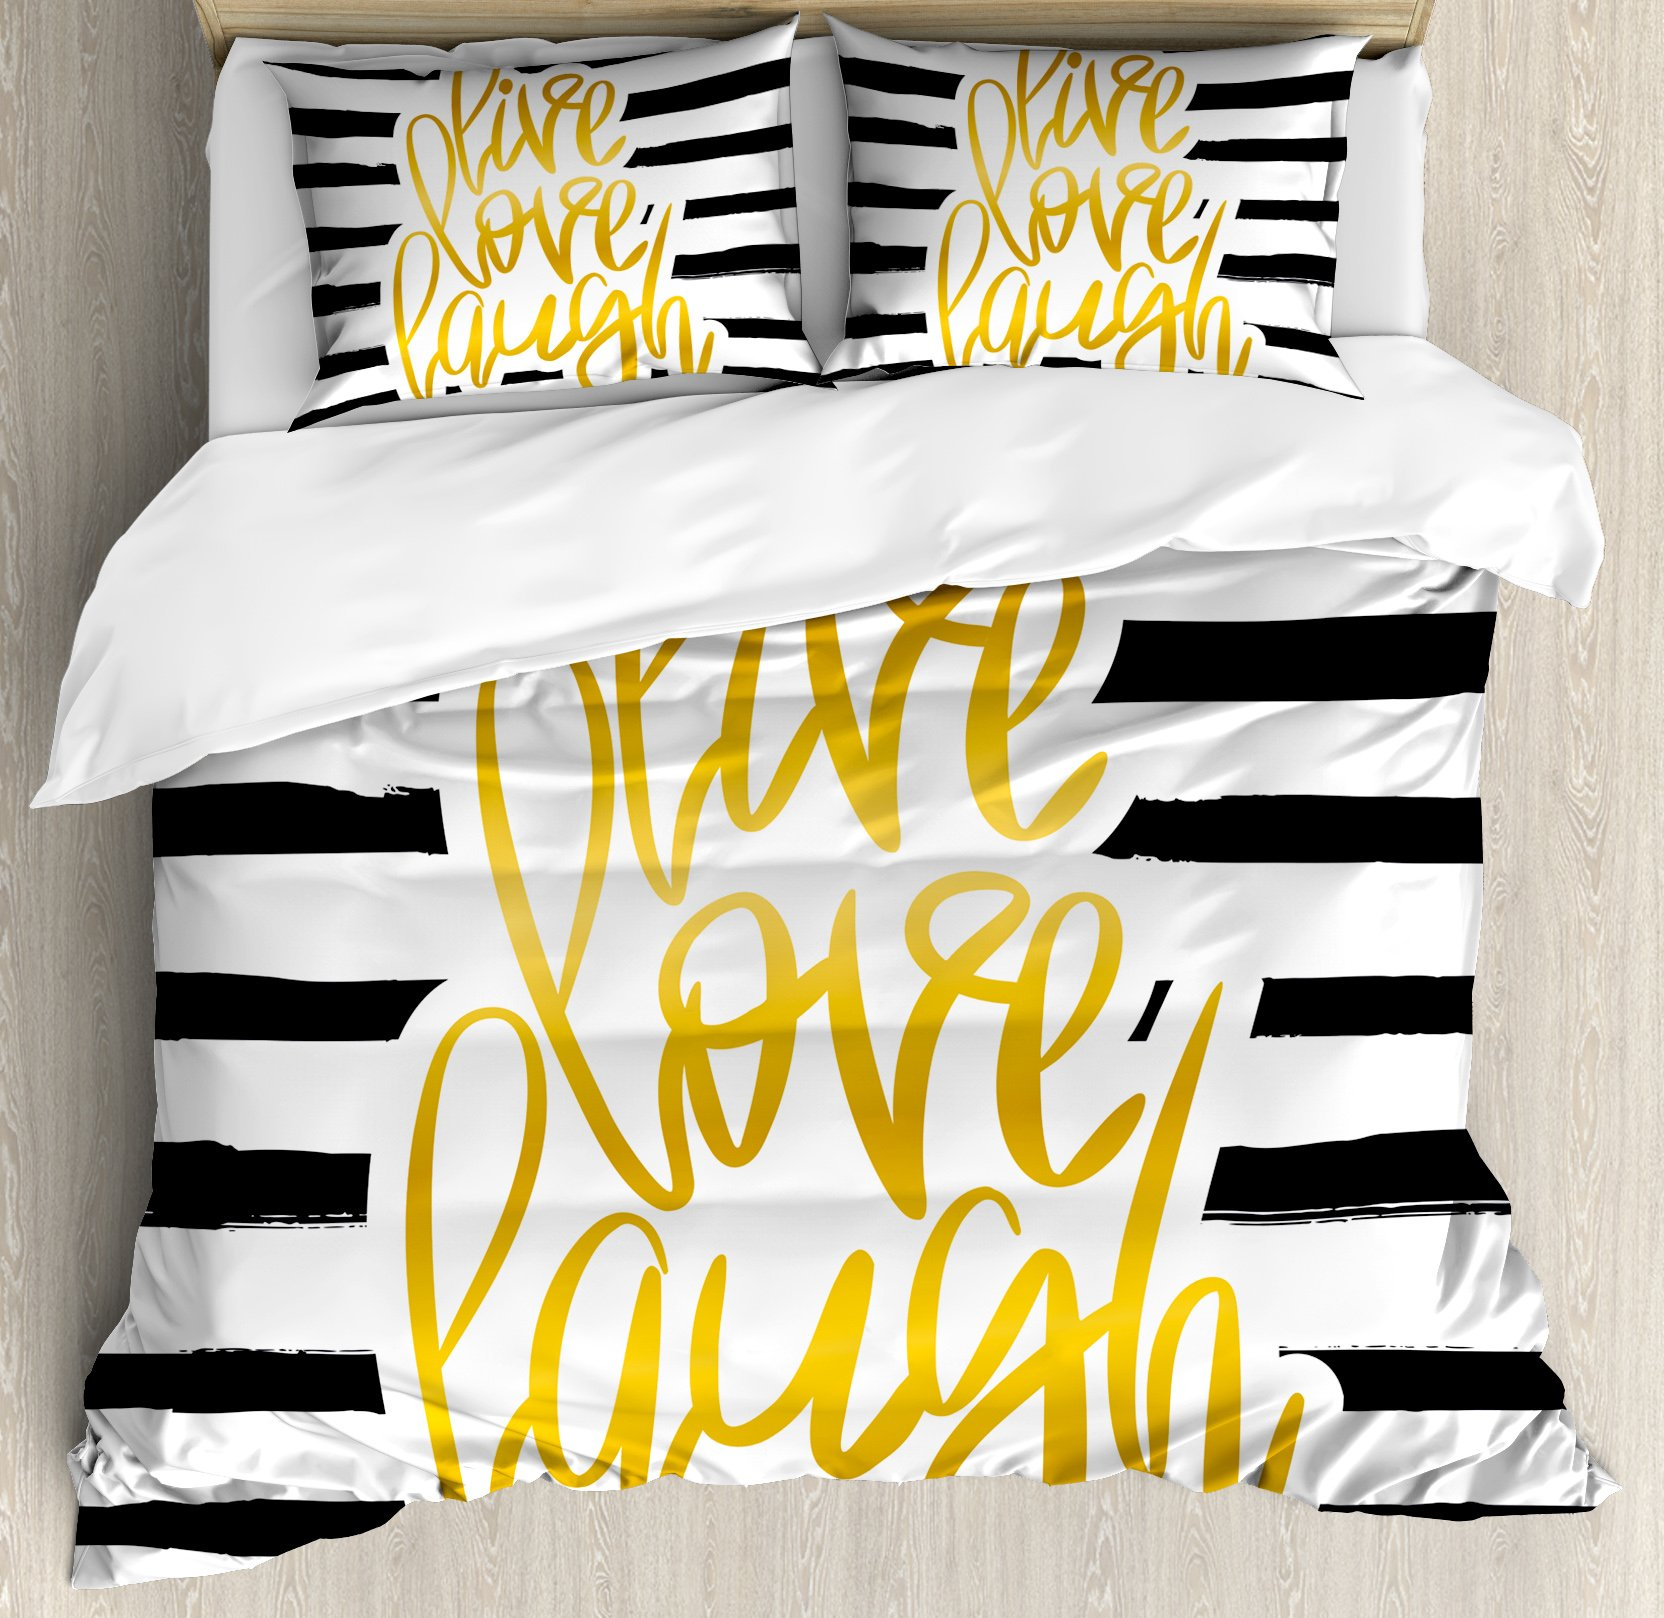 Live Laugh Love Duvet Cover Set Queen Size by Ambesonne, Romantic Design with Hand Drawn Stripes and Calligraphic Text, Decorative 3 Piece Bedding Set with 2 Pillow Shams, Black White Earth Yellow